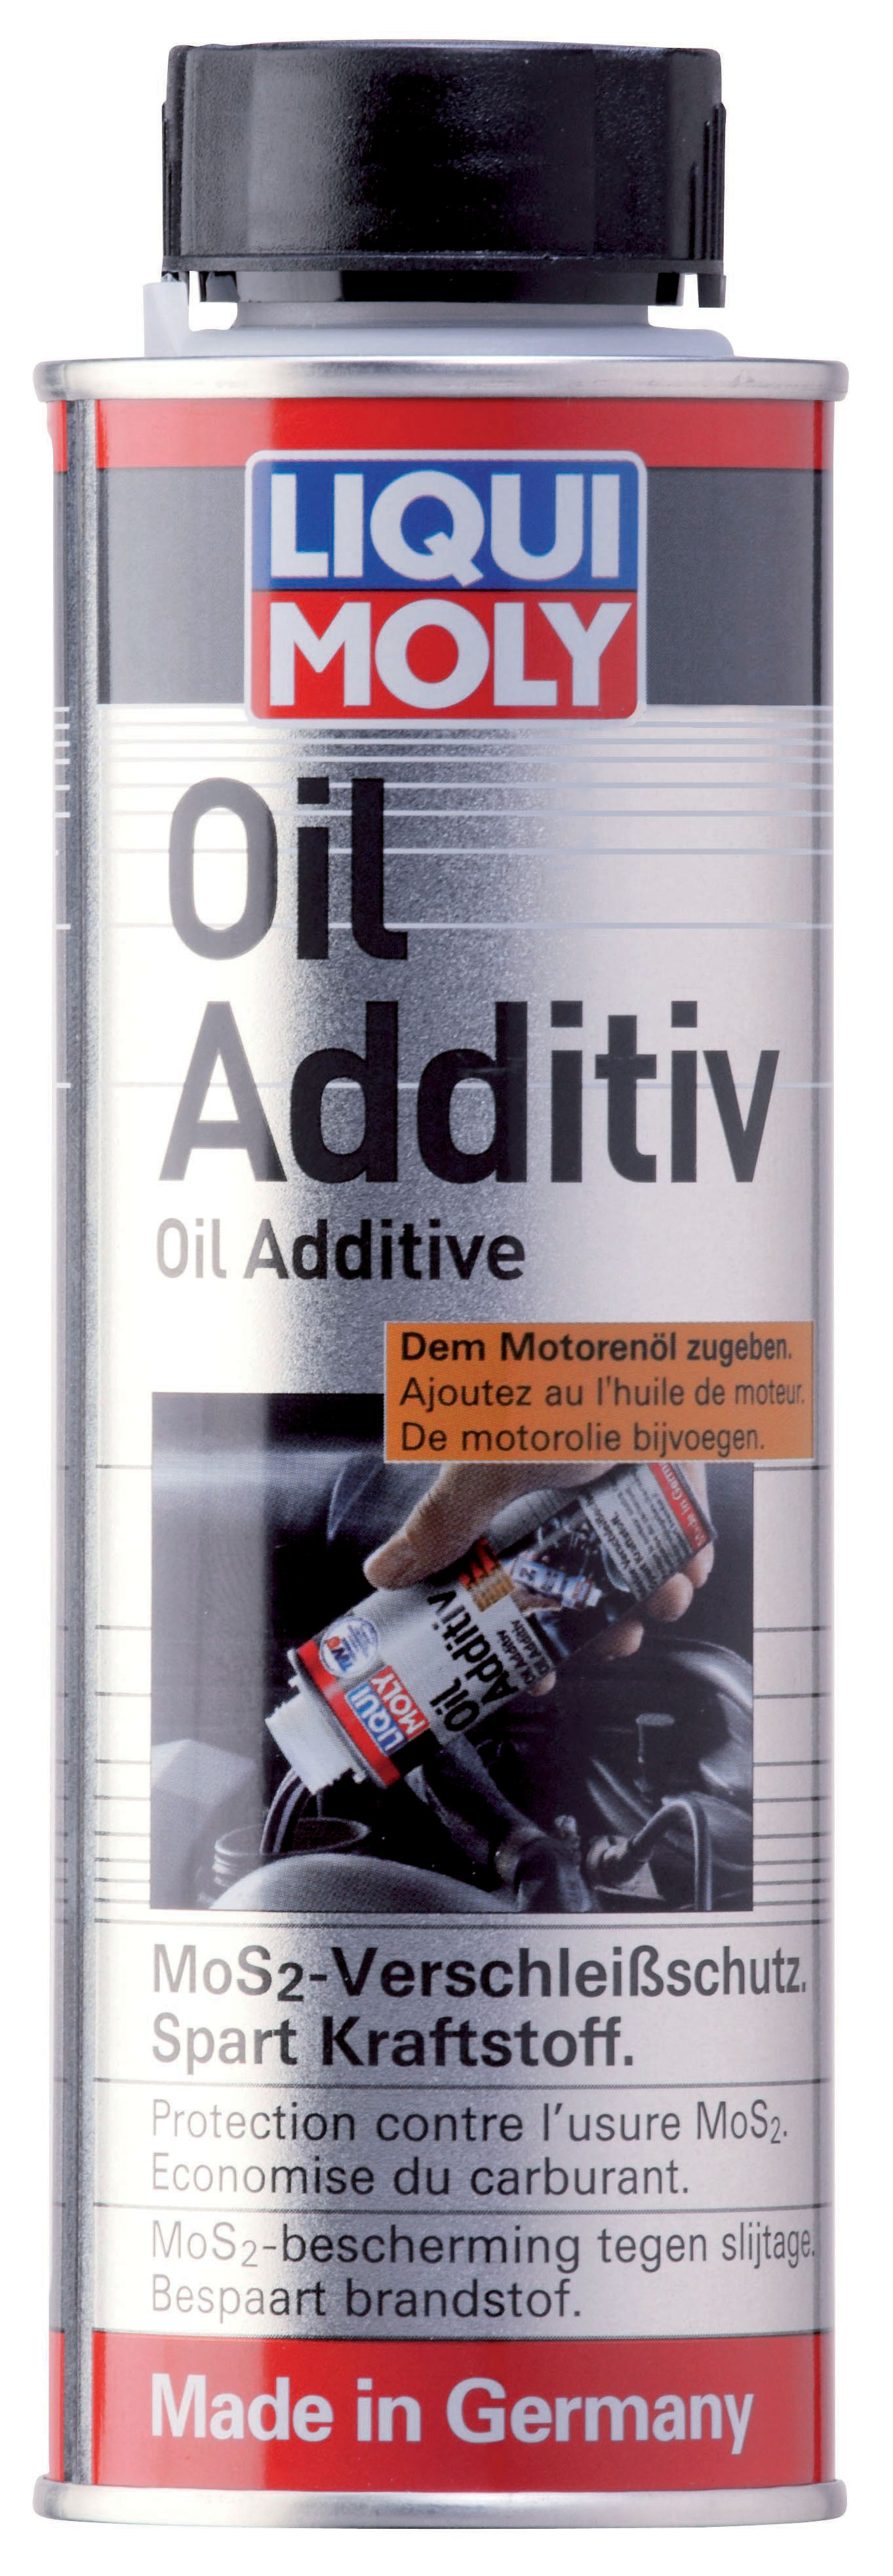 liqui moly oil additive mos 2 200ml fmw tuning autoteile. Black Bedroom Furniture Sets. Home Design Ideas